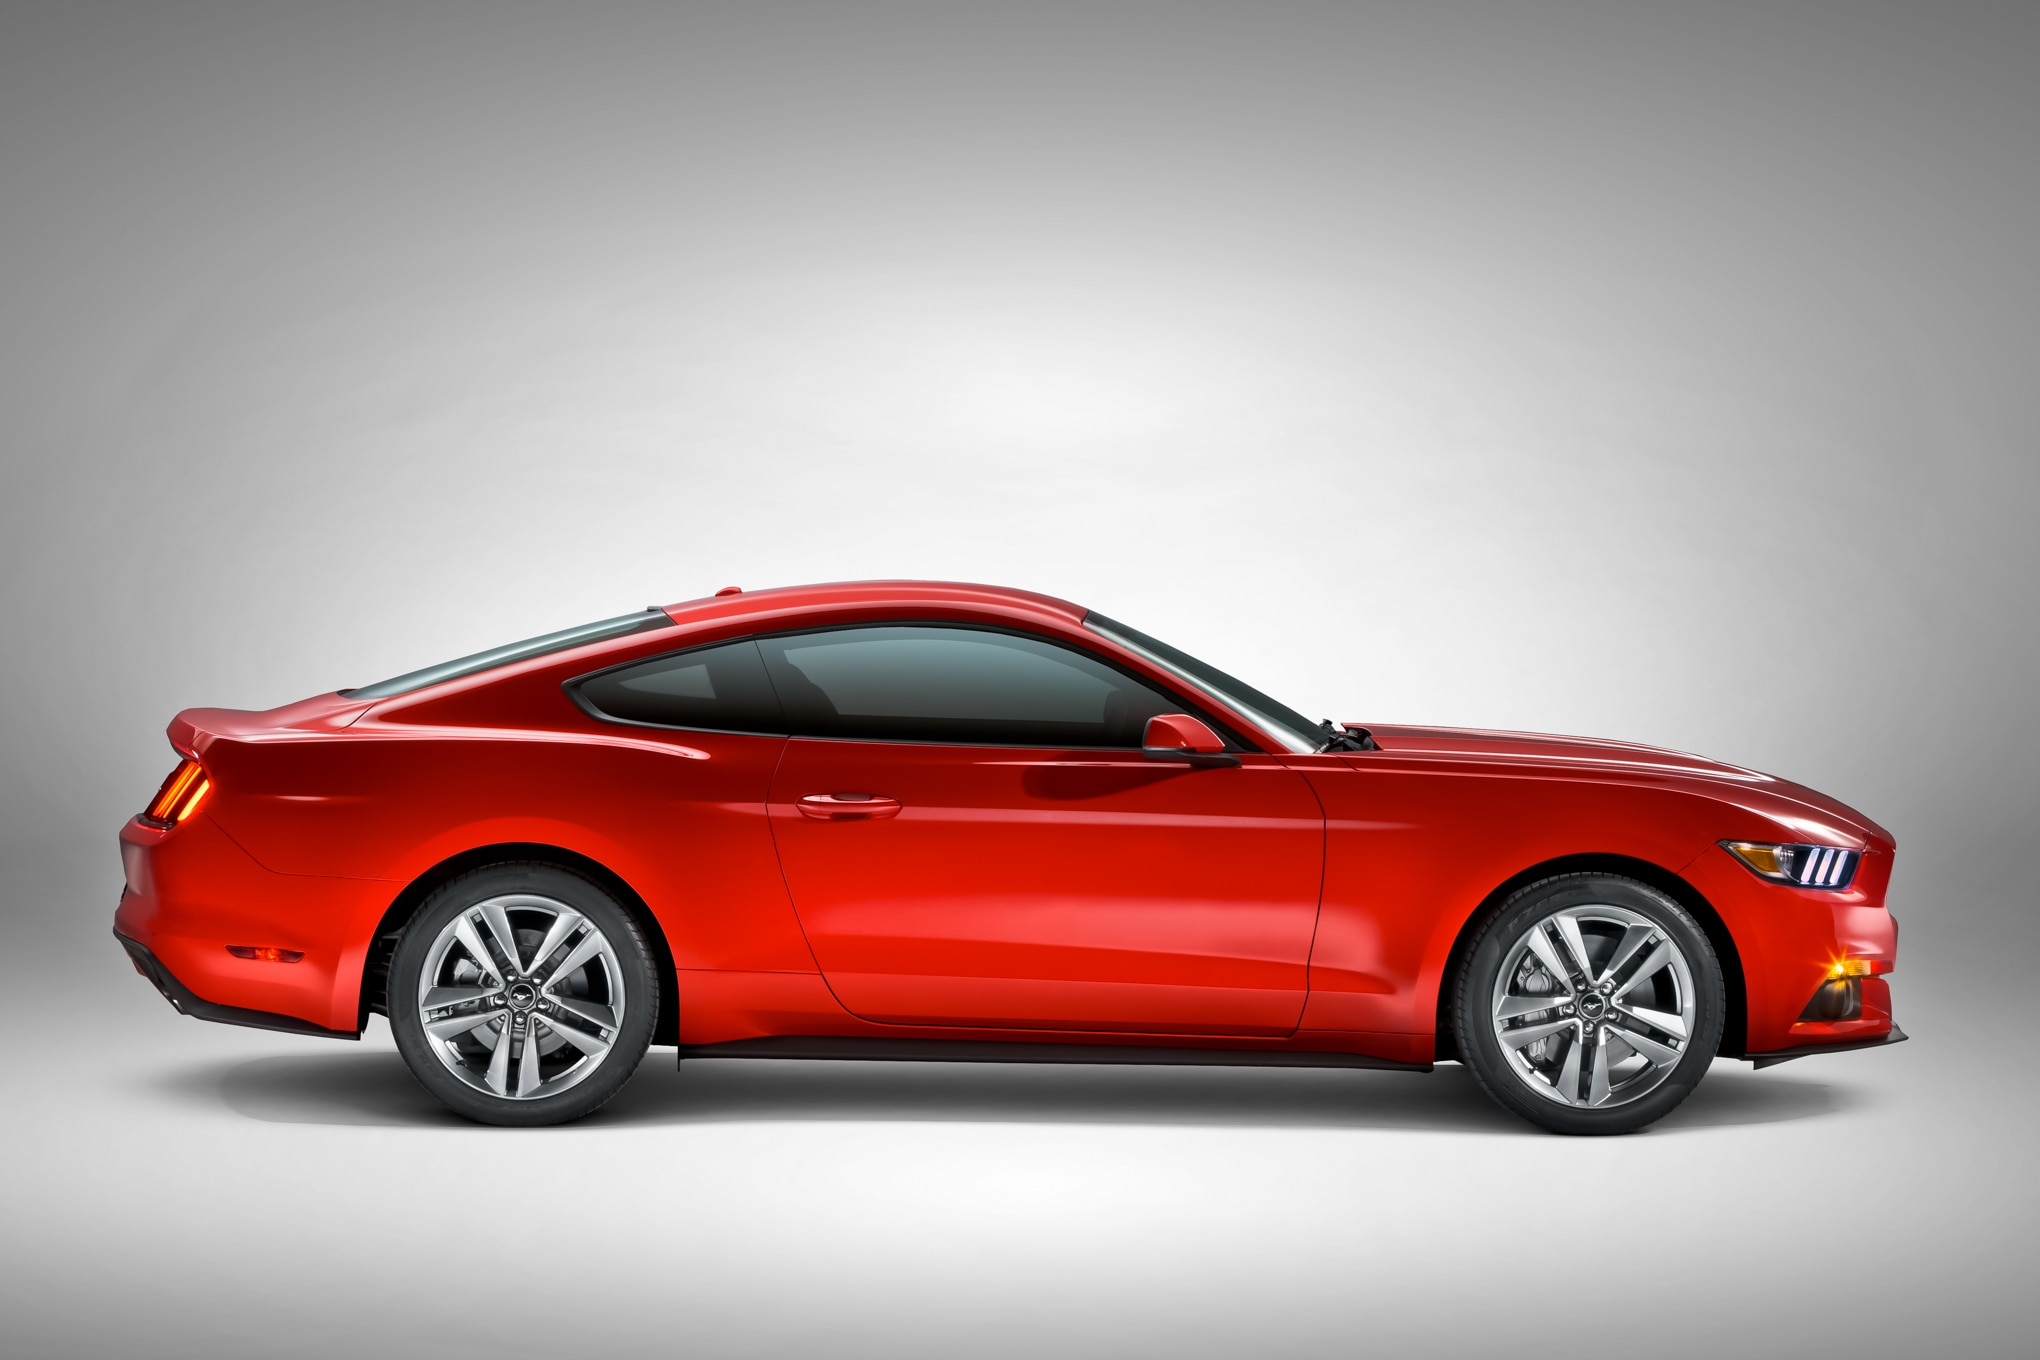 2015 Ford Mustang Revealed Automobile Magazine Sketches Same Wheelbase More Intelligent Packaging The